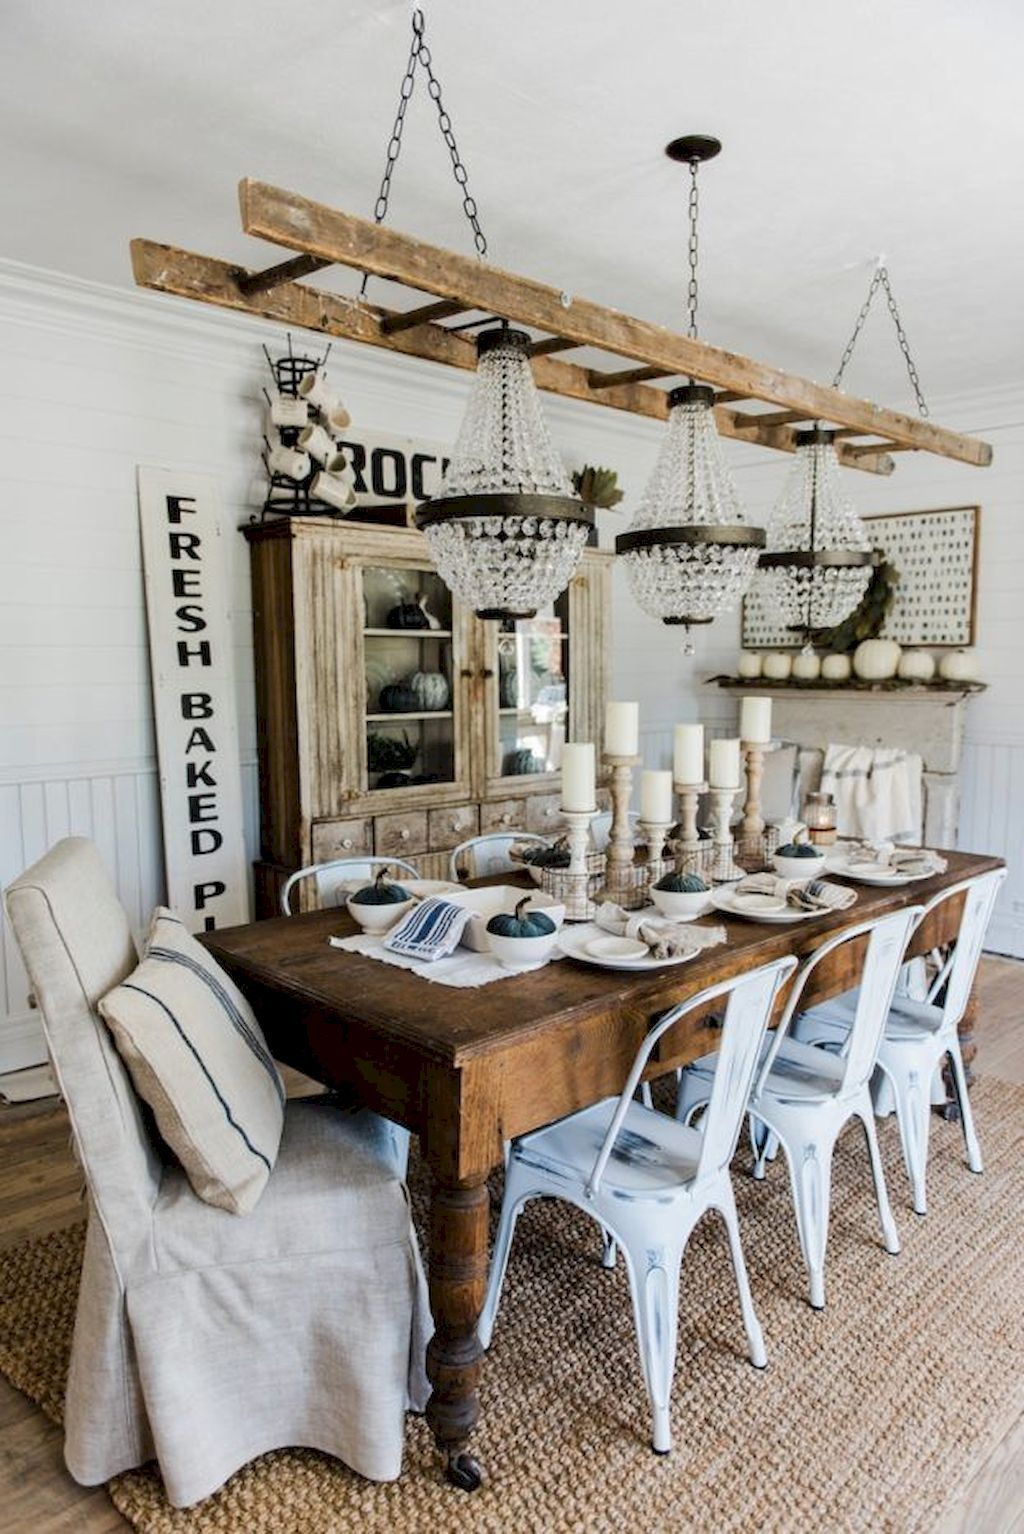 Rustic Dining Room Decorating Ideas.60 Farmhouse Dining Room Decorating Ideas Dining Room